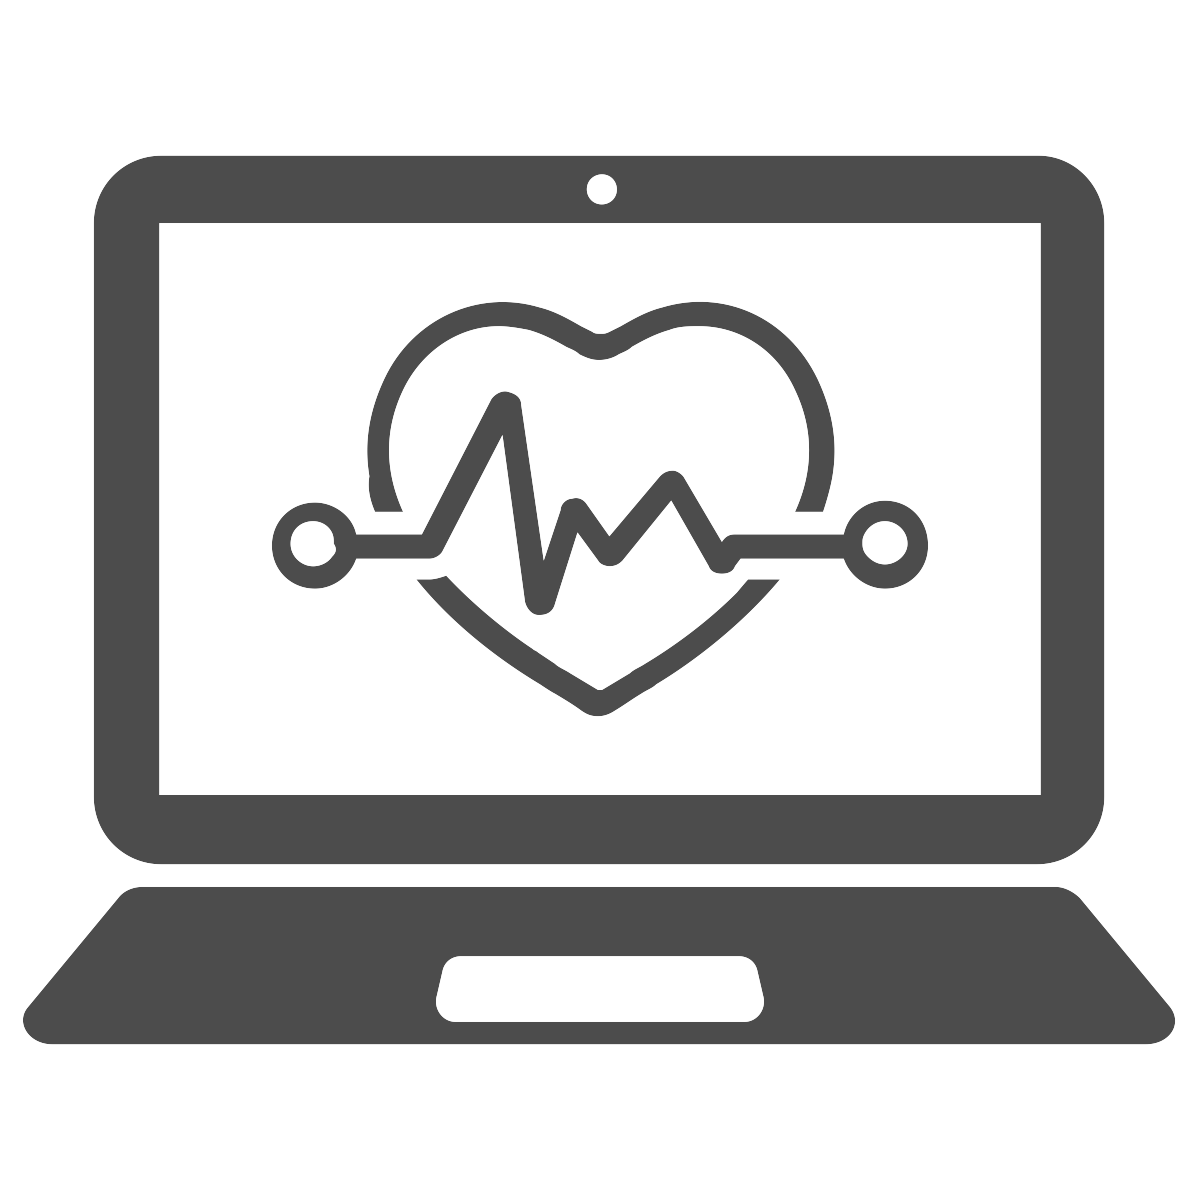 Technology clipart technology icon. Creating better healthcare through